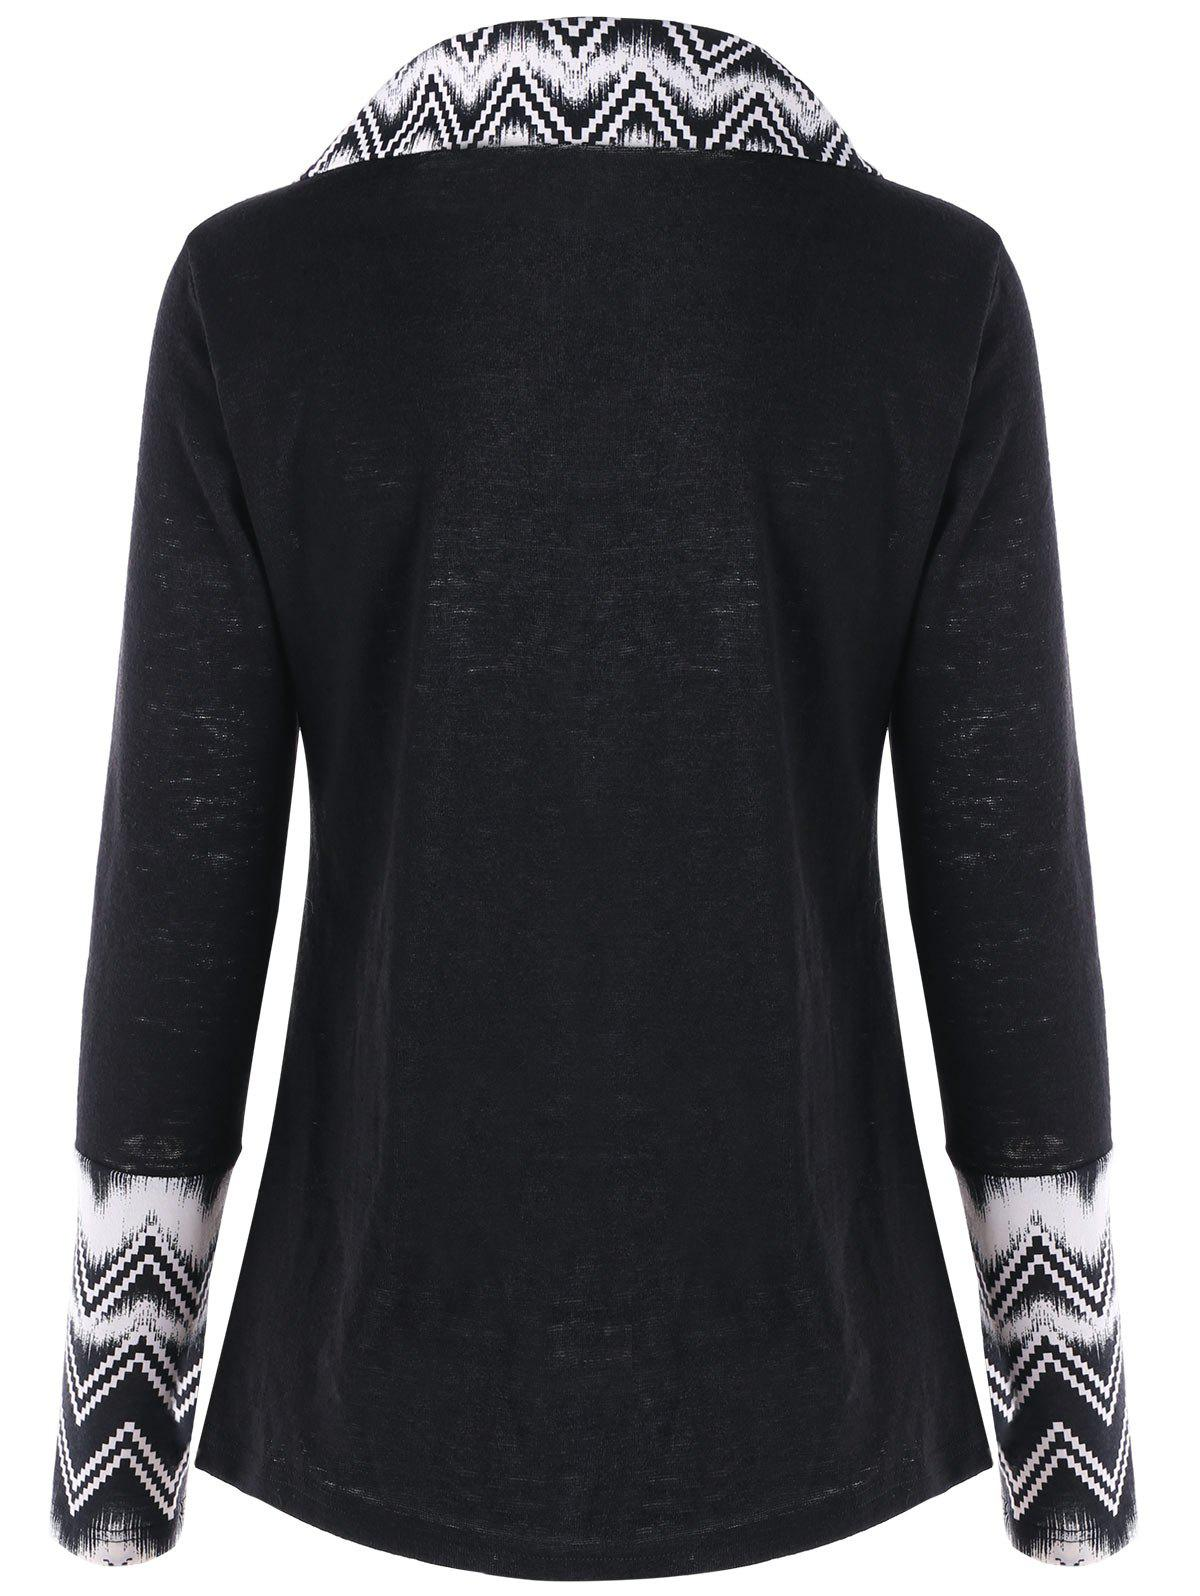 Turndown Collar Chevron Panel Long Sleeve Top - BLACK L